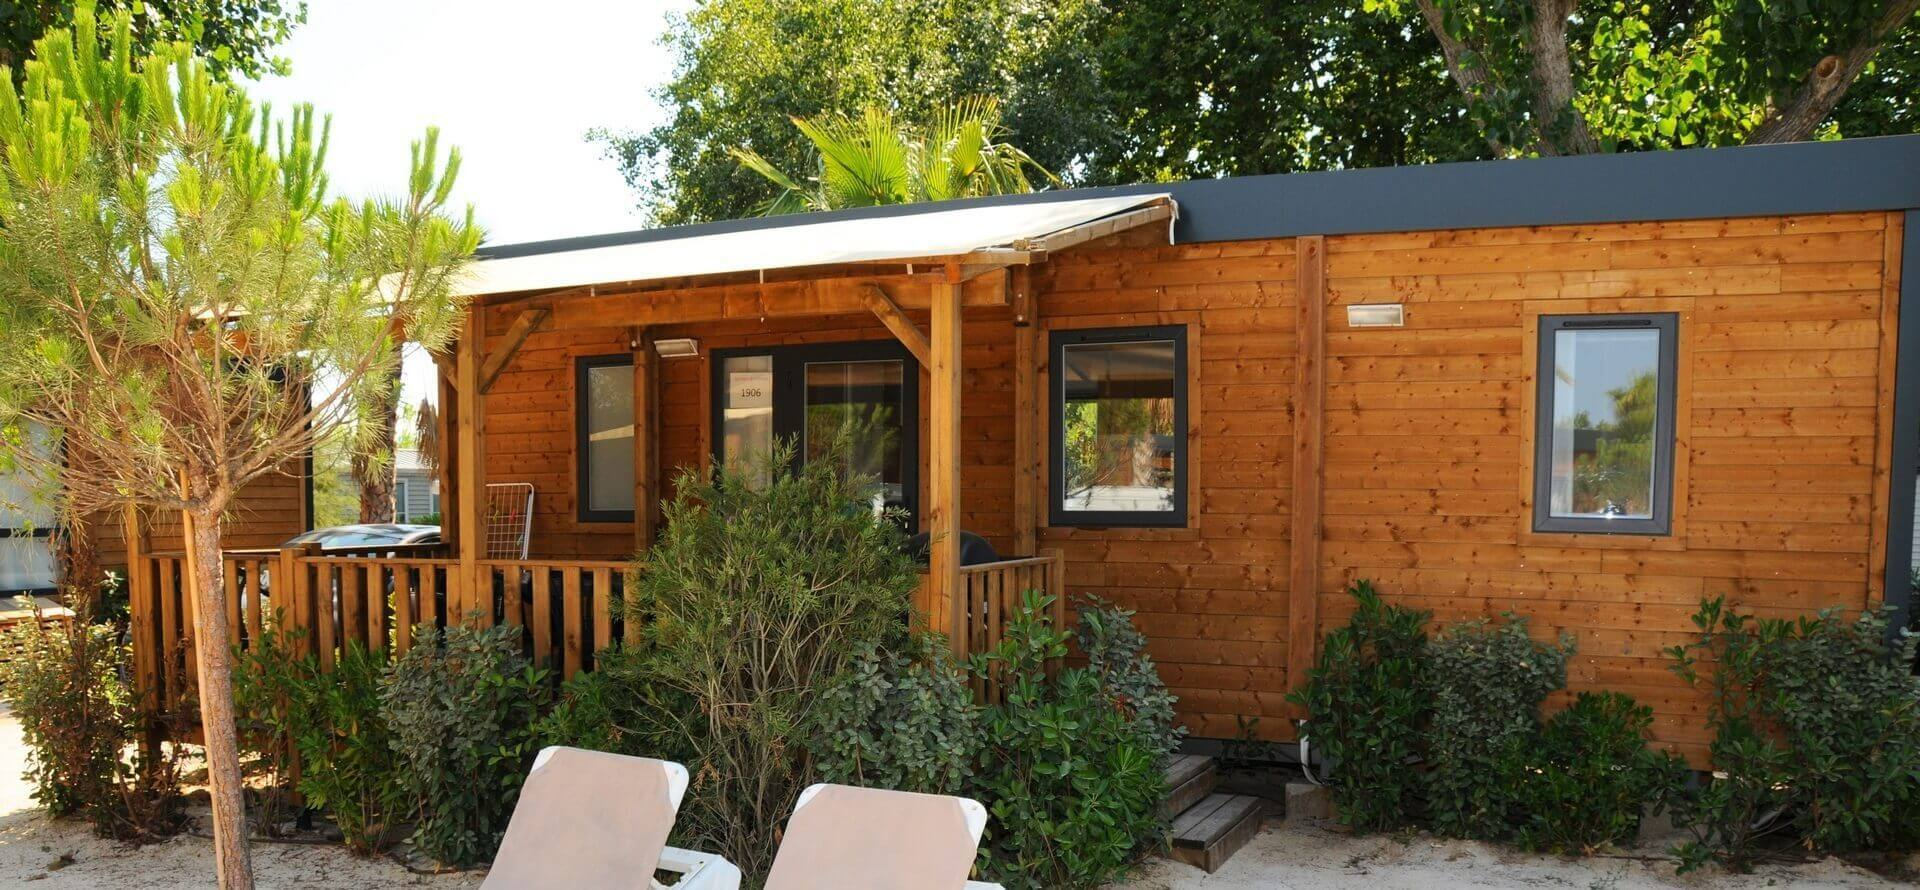 Mobile home rental in port grimaud bay of saint tropez for Mobil chalet